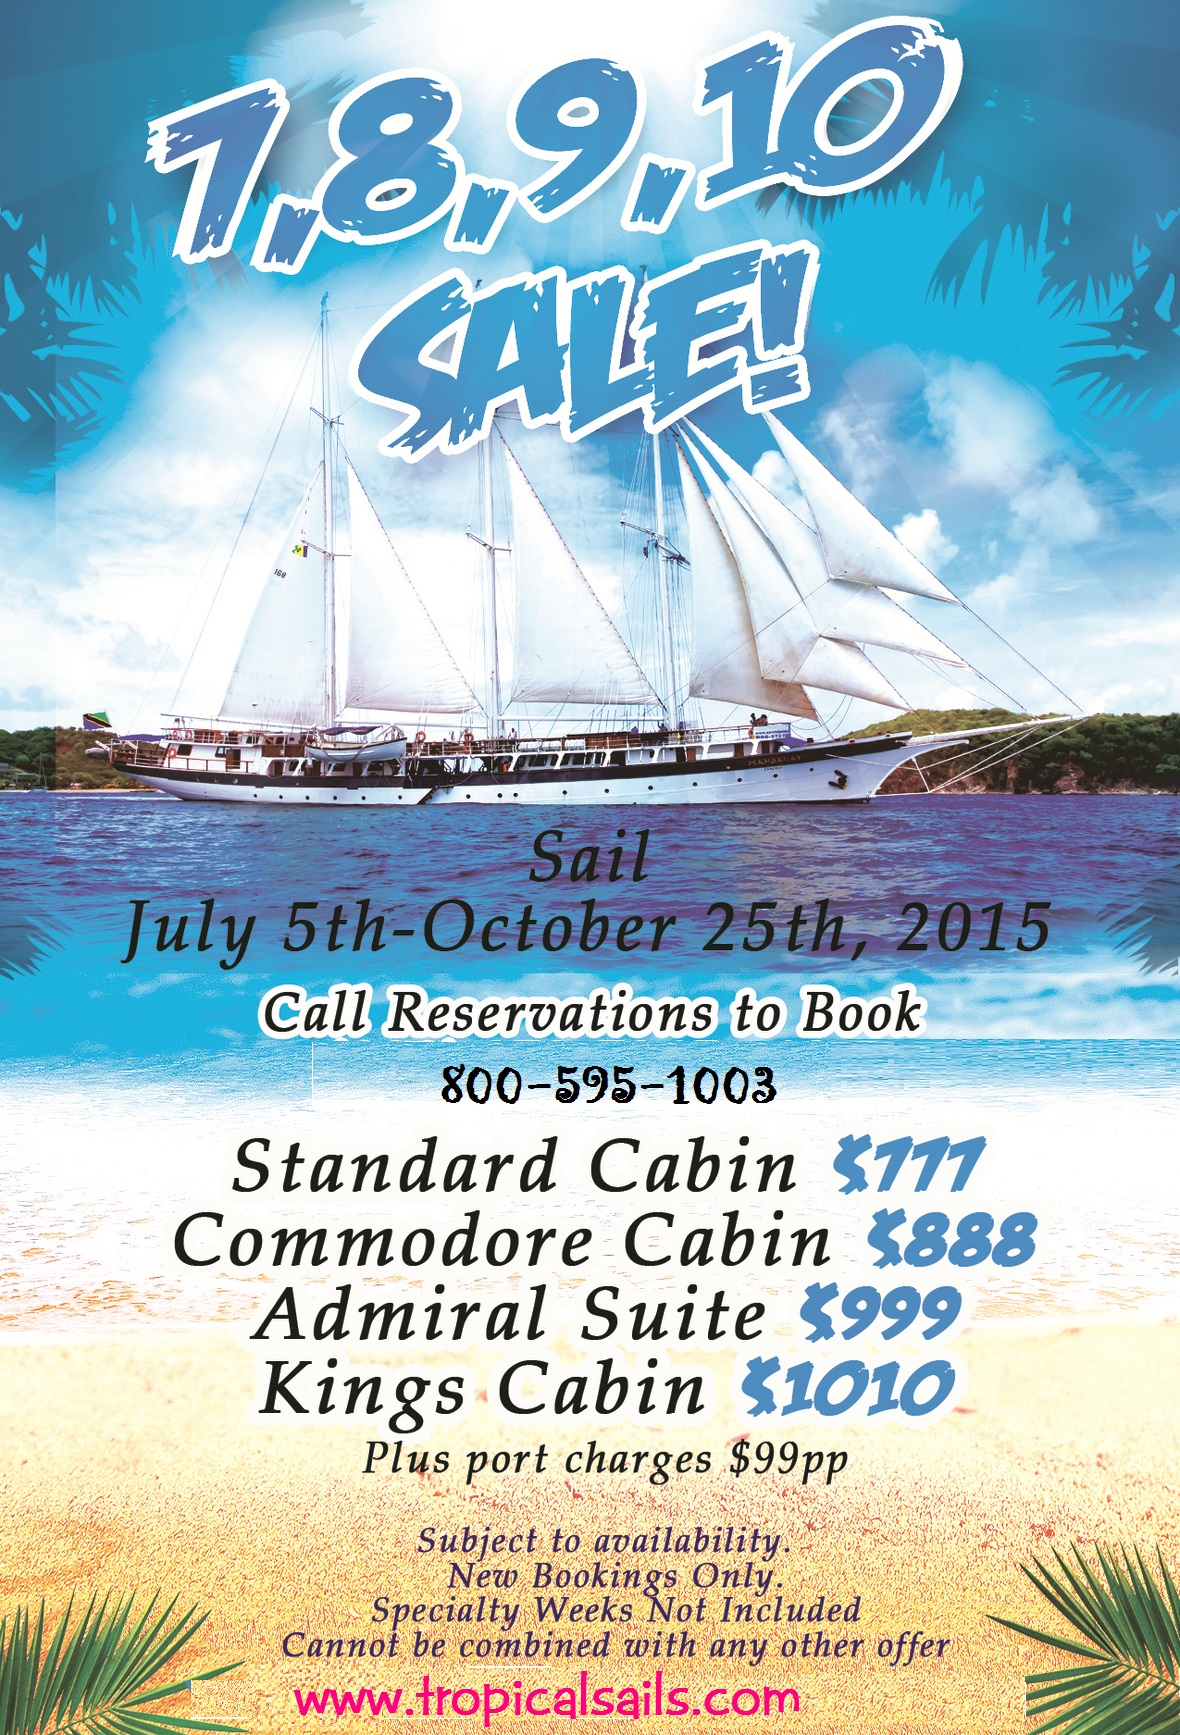 Windjammer Mandalay Summer Sale windjammer mandalay Windjammer Mandalay Cruise Sale Summer 2015 Windjammer Mandalay Summer Sale 2015